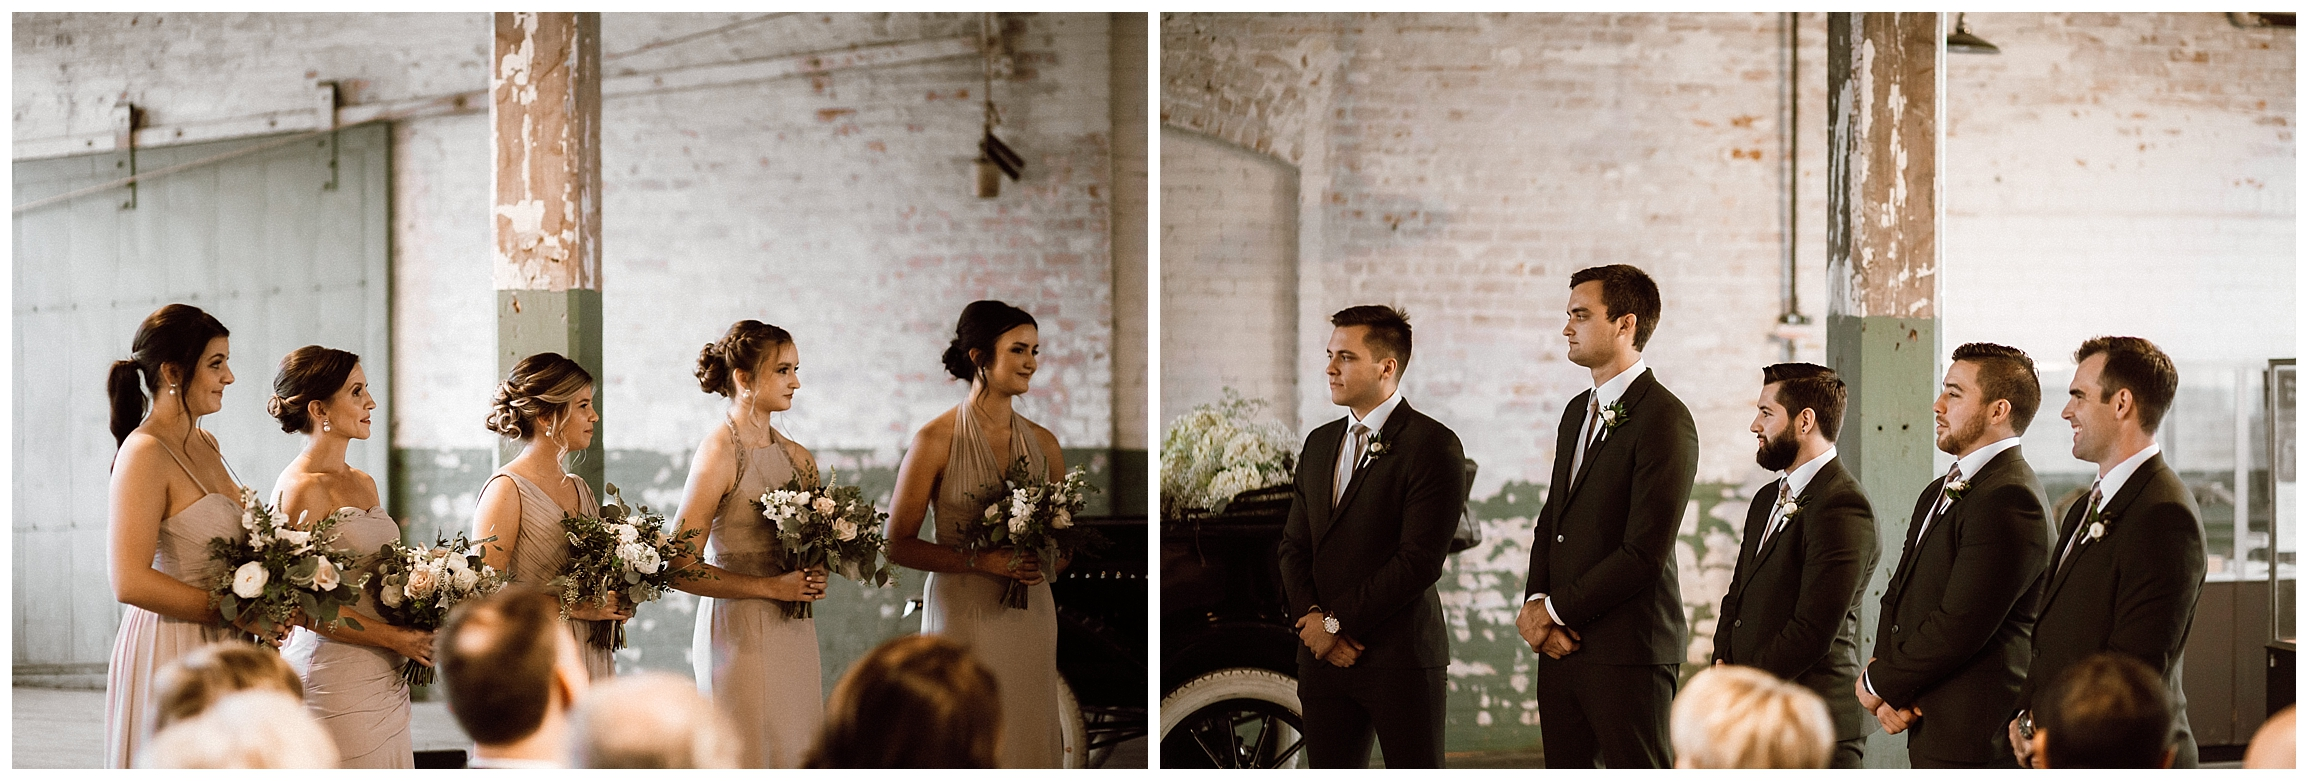 Katie_Vonasek_Photography_Ford_Piquette_Plant_Wedding_Detroit68.JPG